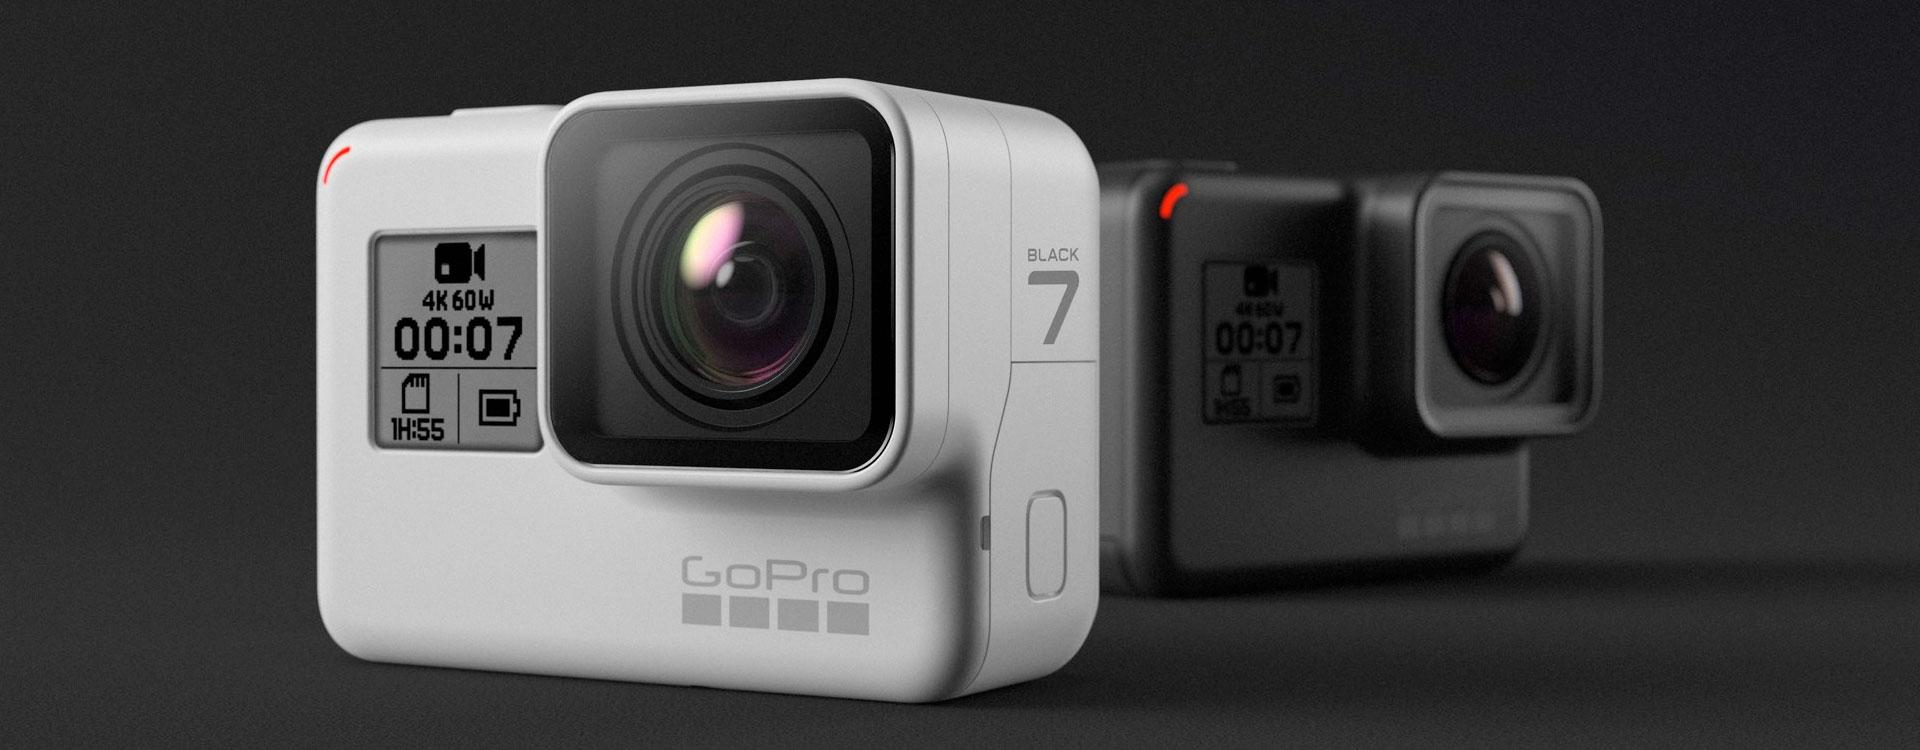 Diferencias Gopro Hero7 Black Silver Y White Comparativa